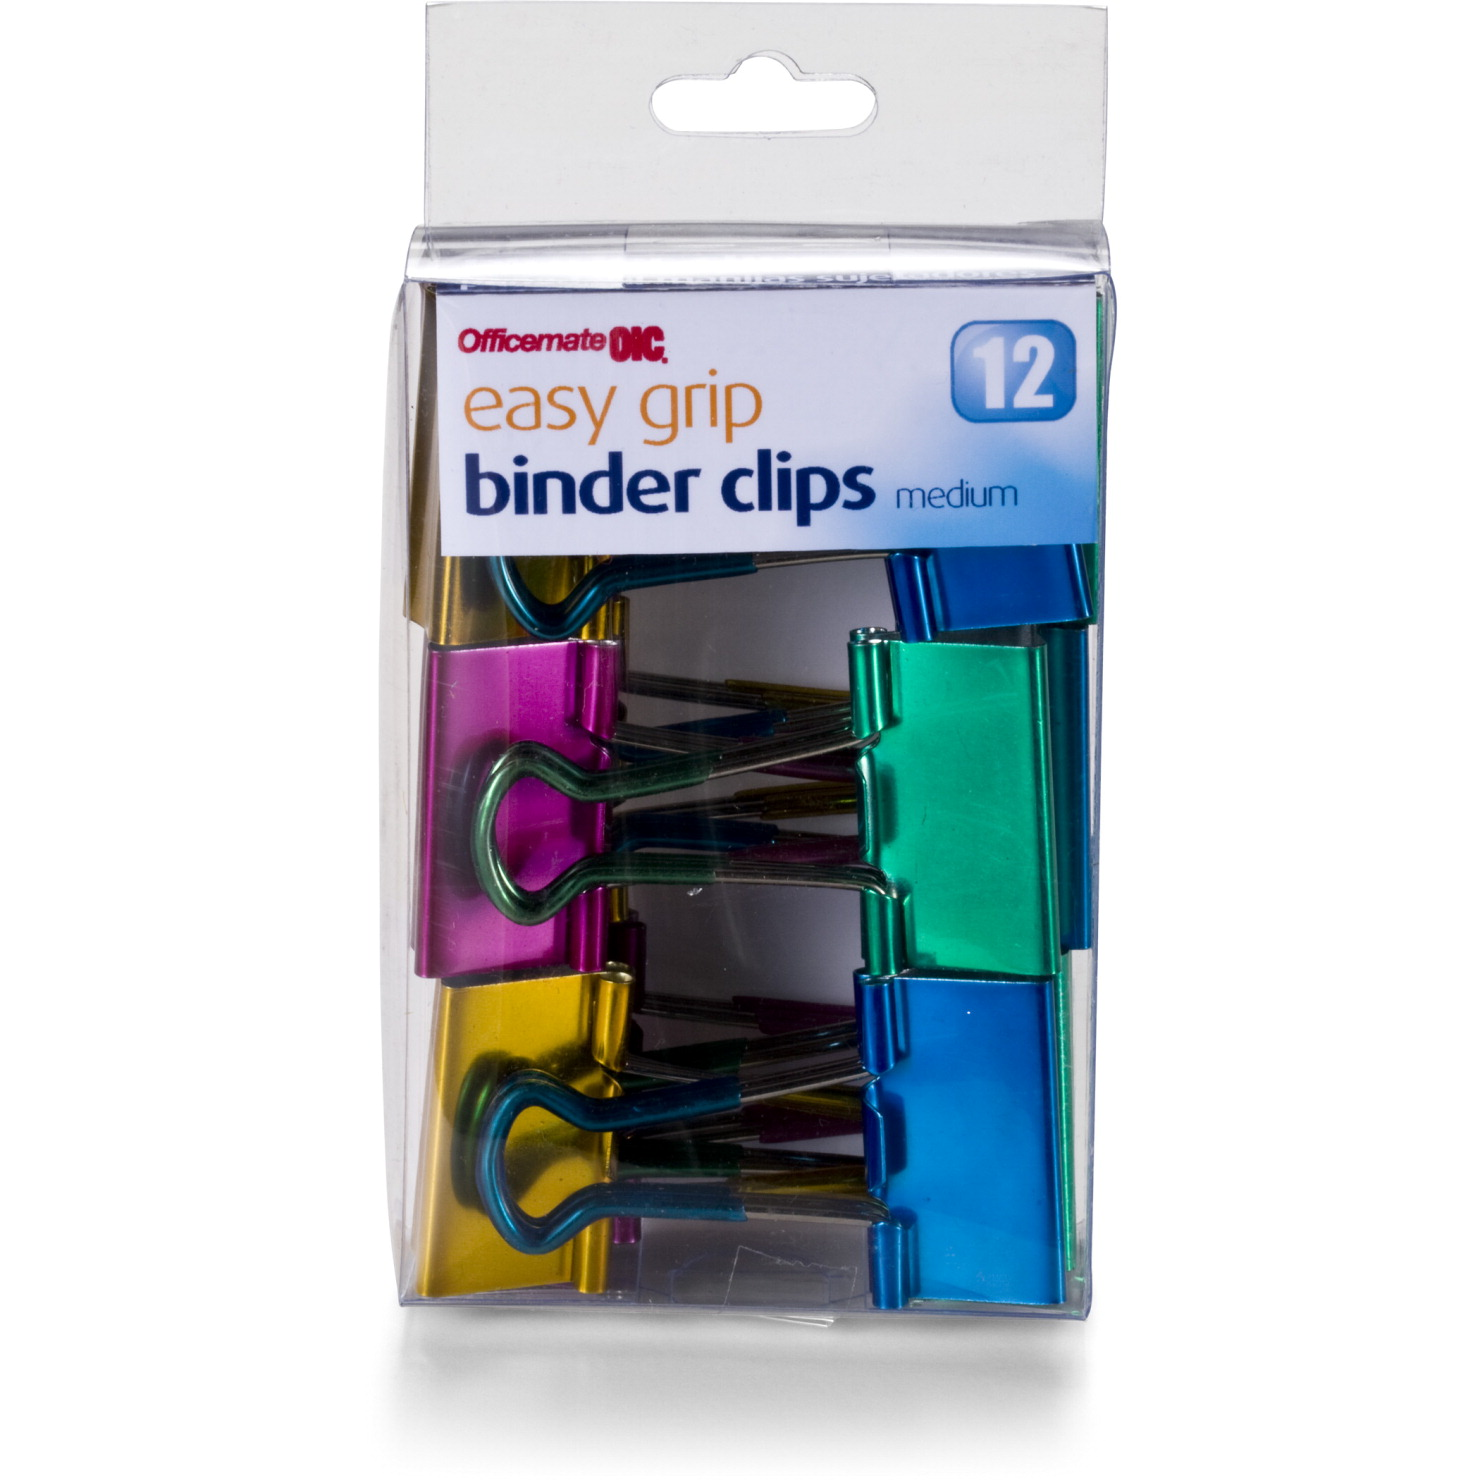 Officemate Easy Grip Binder Clips, Metallic, Medium, Pack of 12